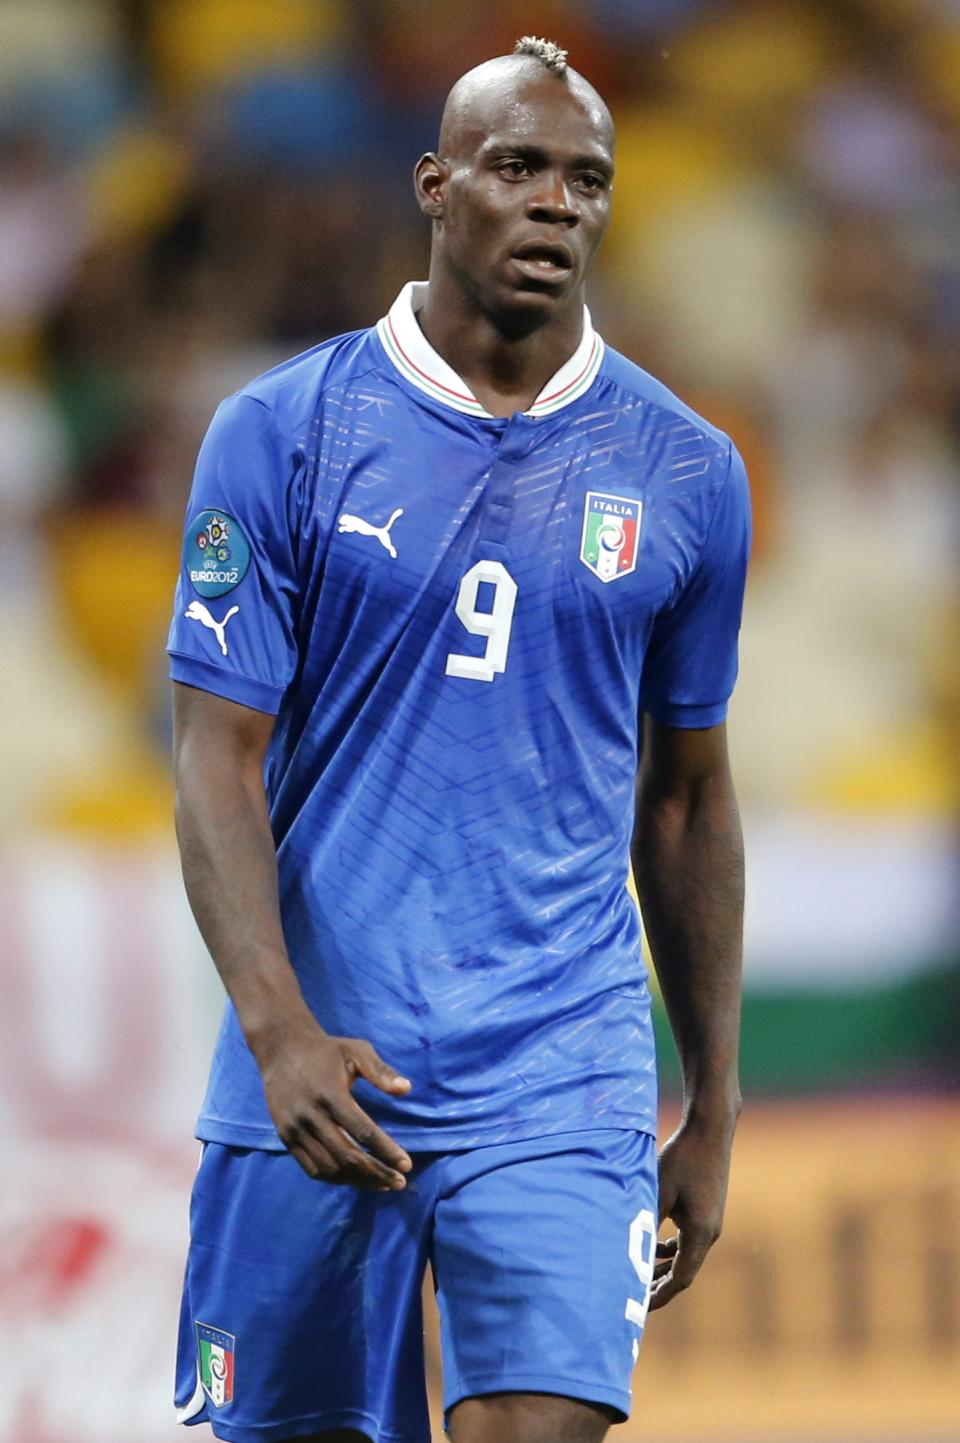 Italy's Mario Balotelli reacts during the Euro 2012 soccer championship quarterfinal match between England and Italy in Kiev, Ukraine, Monday, June 25, 2012. (AP Photo/Gregorio Borgia)